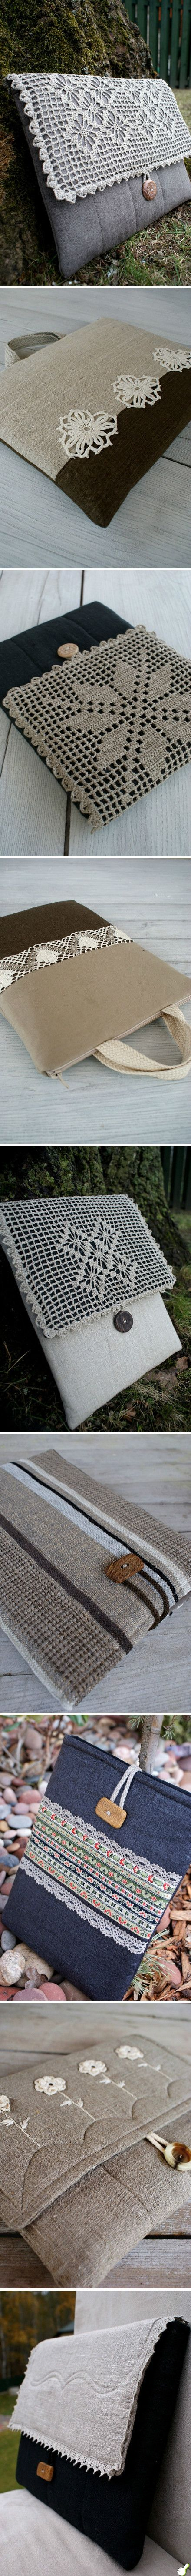 Could crochet a new piece or use vintage lace or filet crochet.